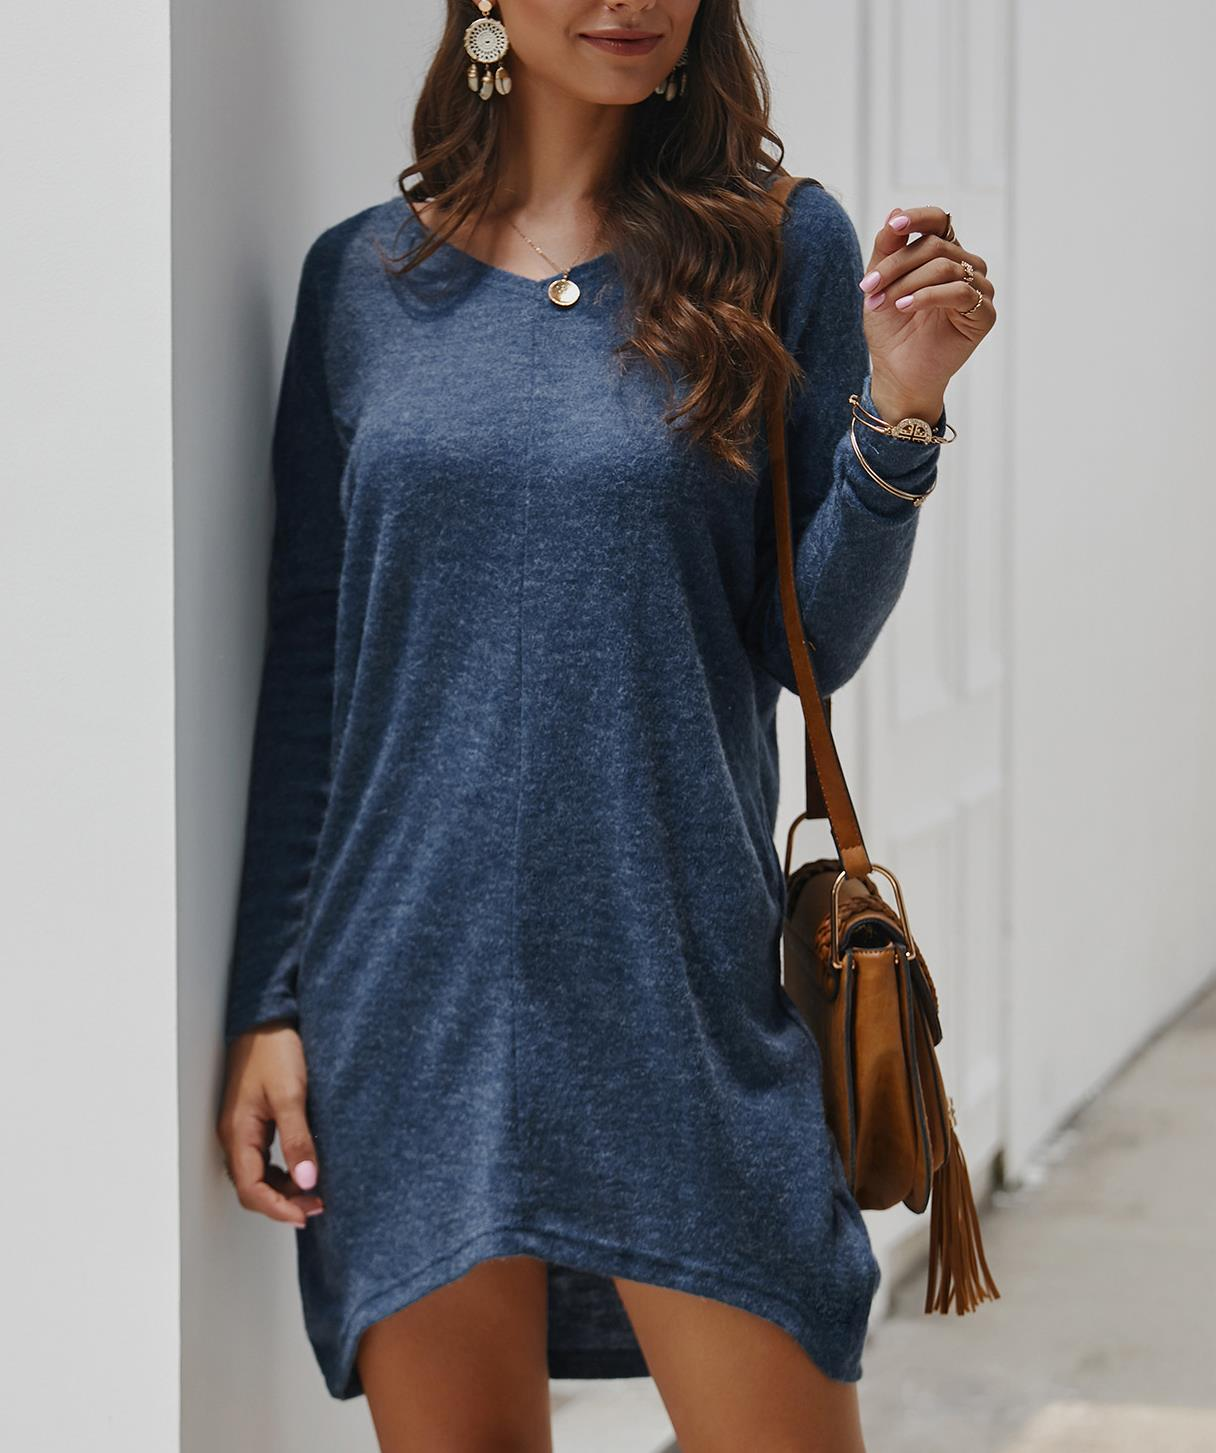 Casual loose top sweater with Dresses